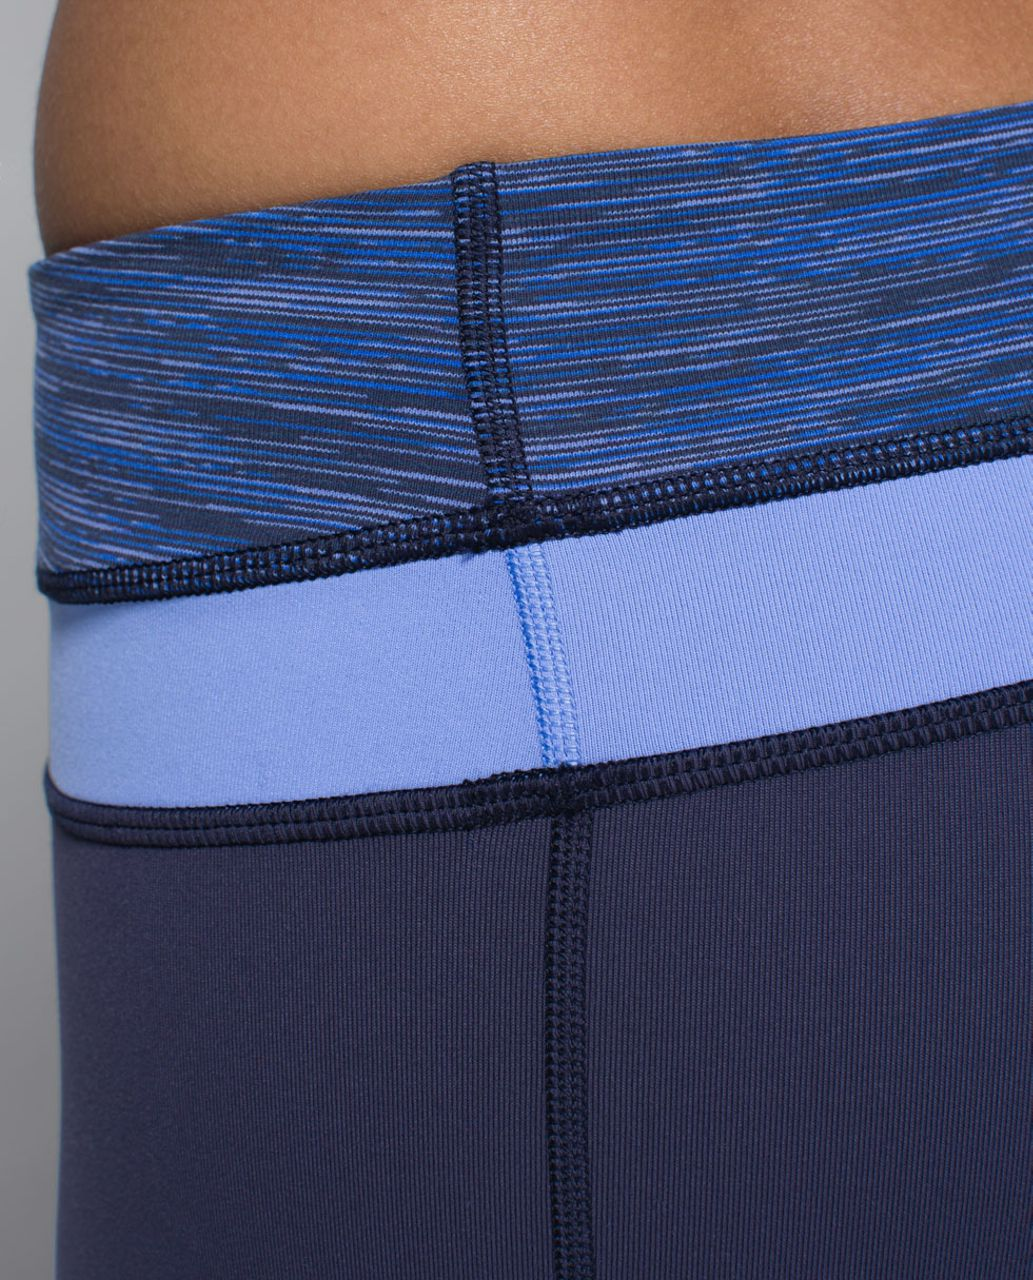 Lululemon Groove Pant (Regular) *Full-On Luon - Cadet Blue / Wee Are From Space Cadet Blue / Lullaby